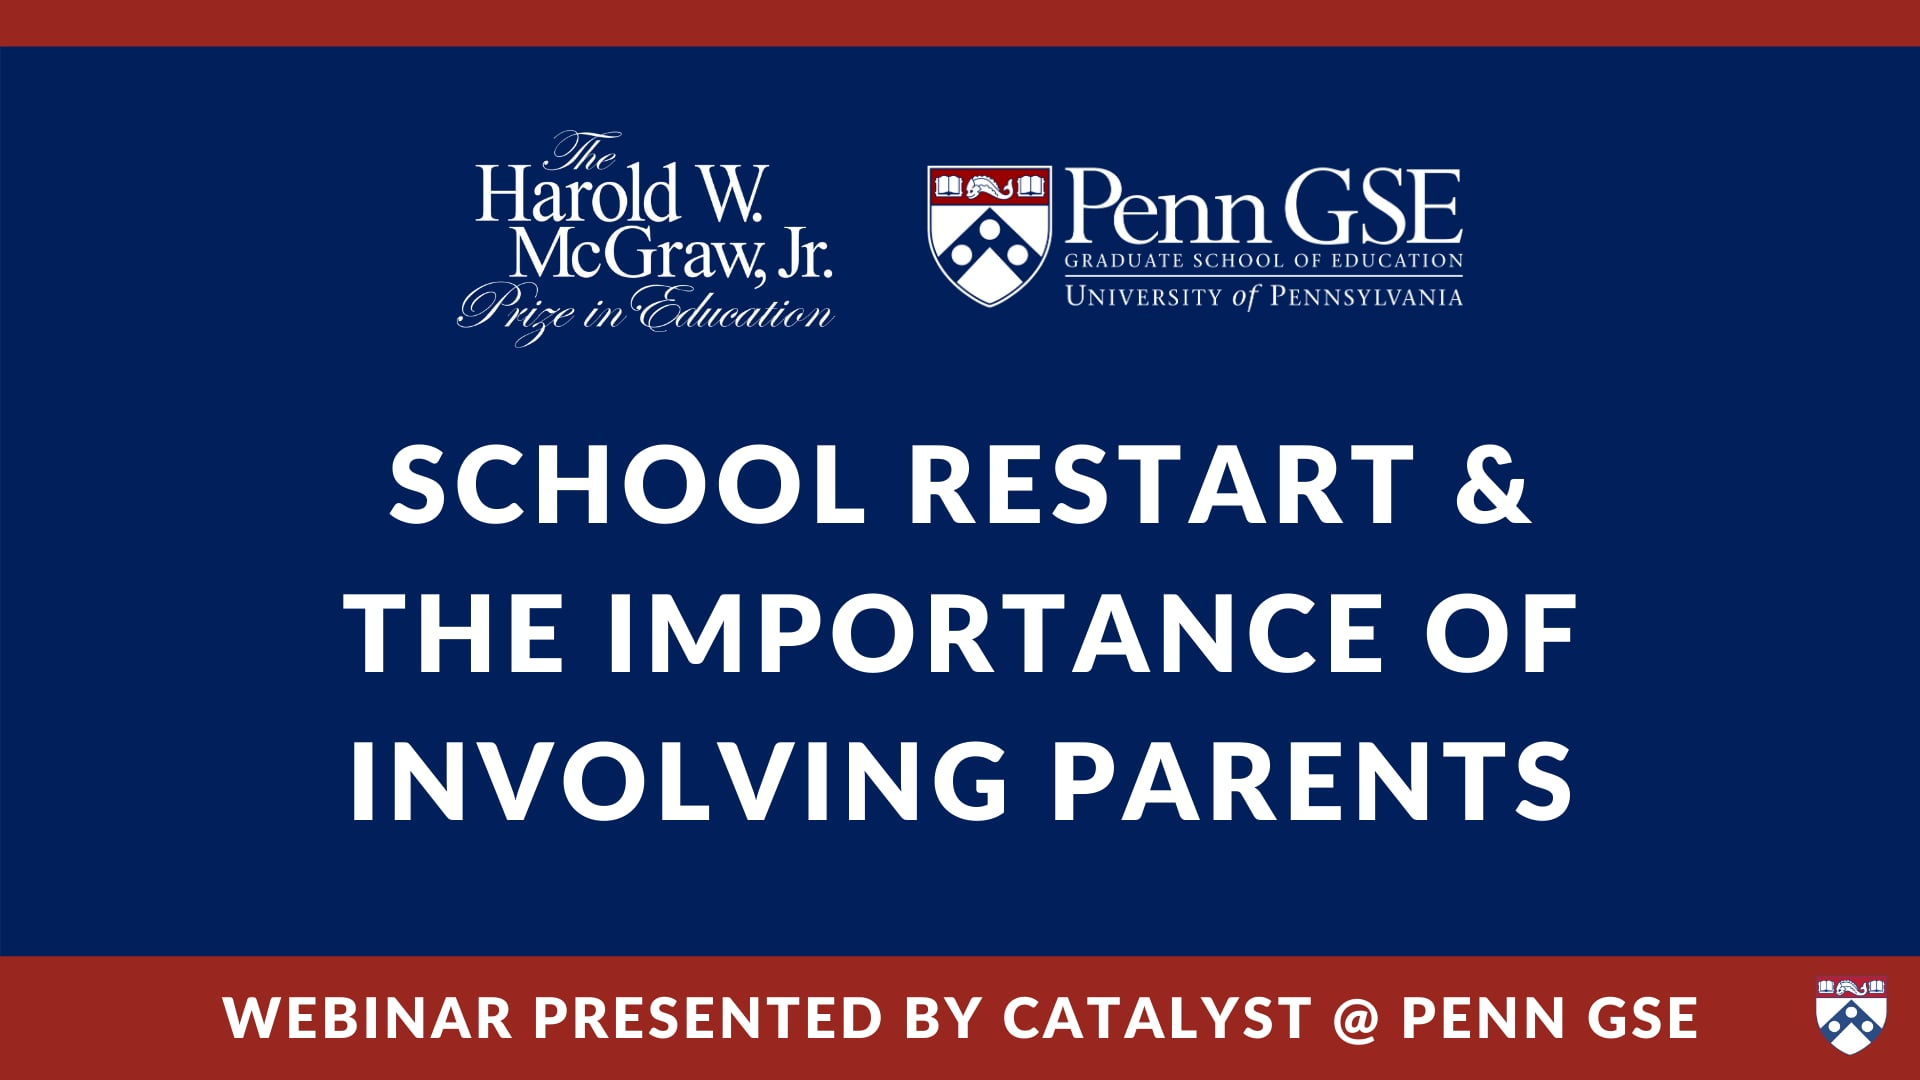 Play video: School Restart & the Importance of Involving Parents